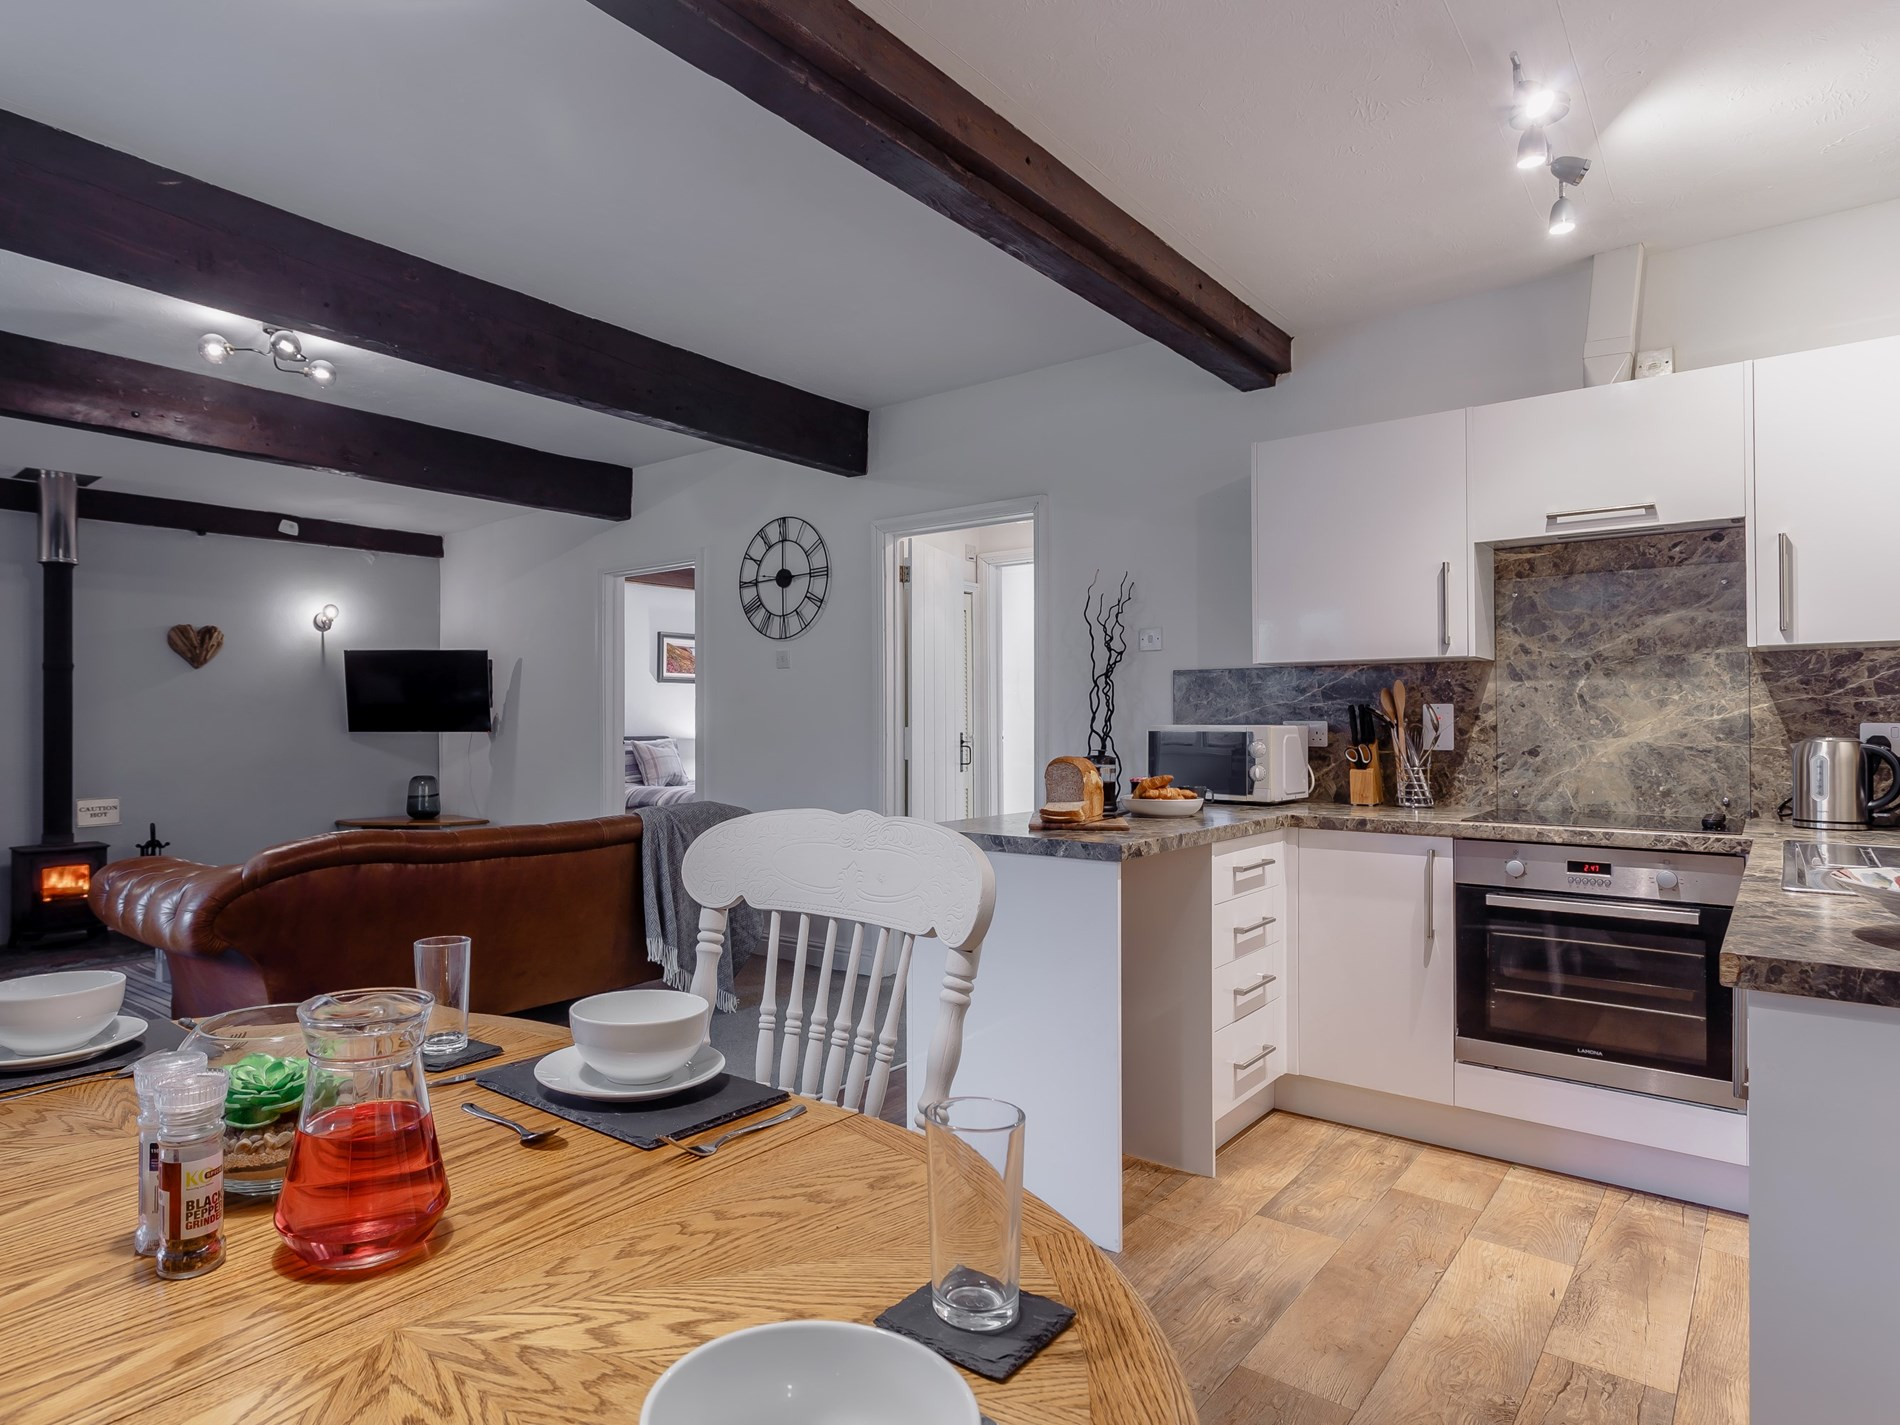 2 Bedroom Cottage in North Cornwall, Cornwall